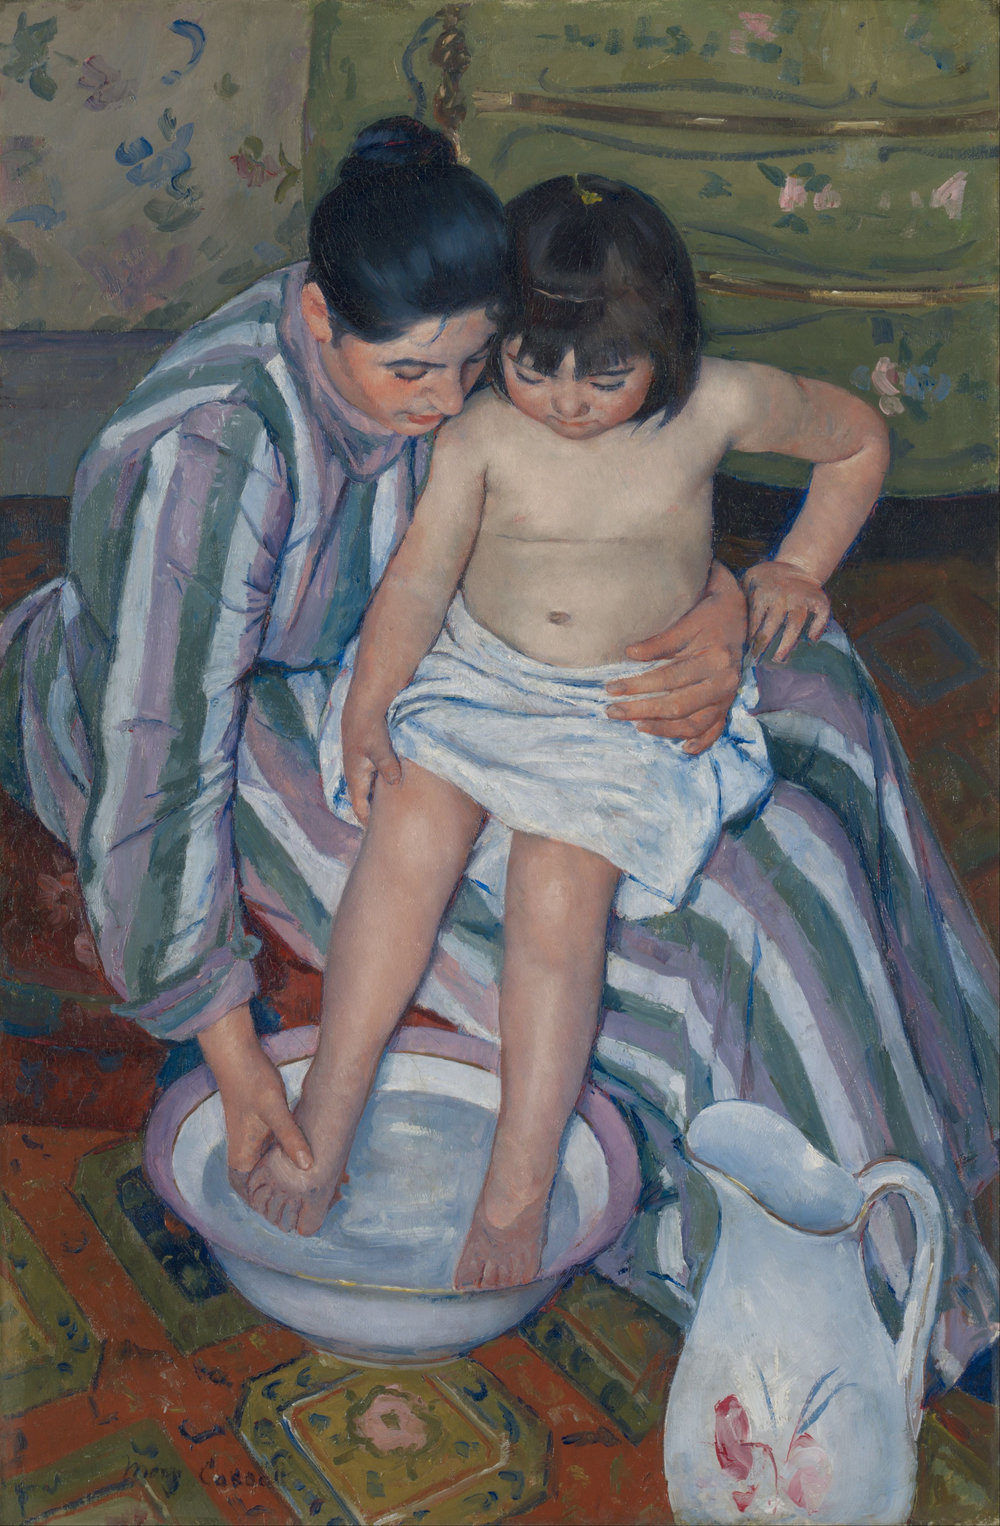 The Child's Bath, Mary Cassatt. 1893.